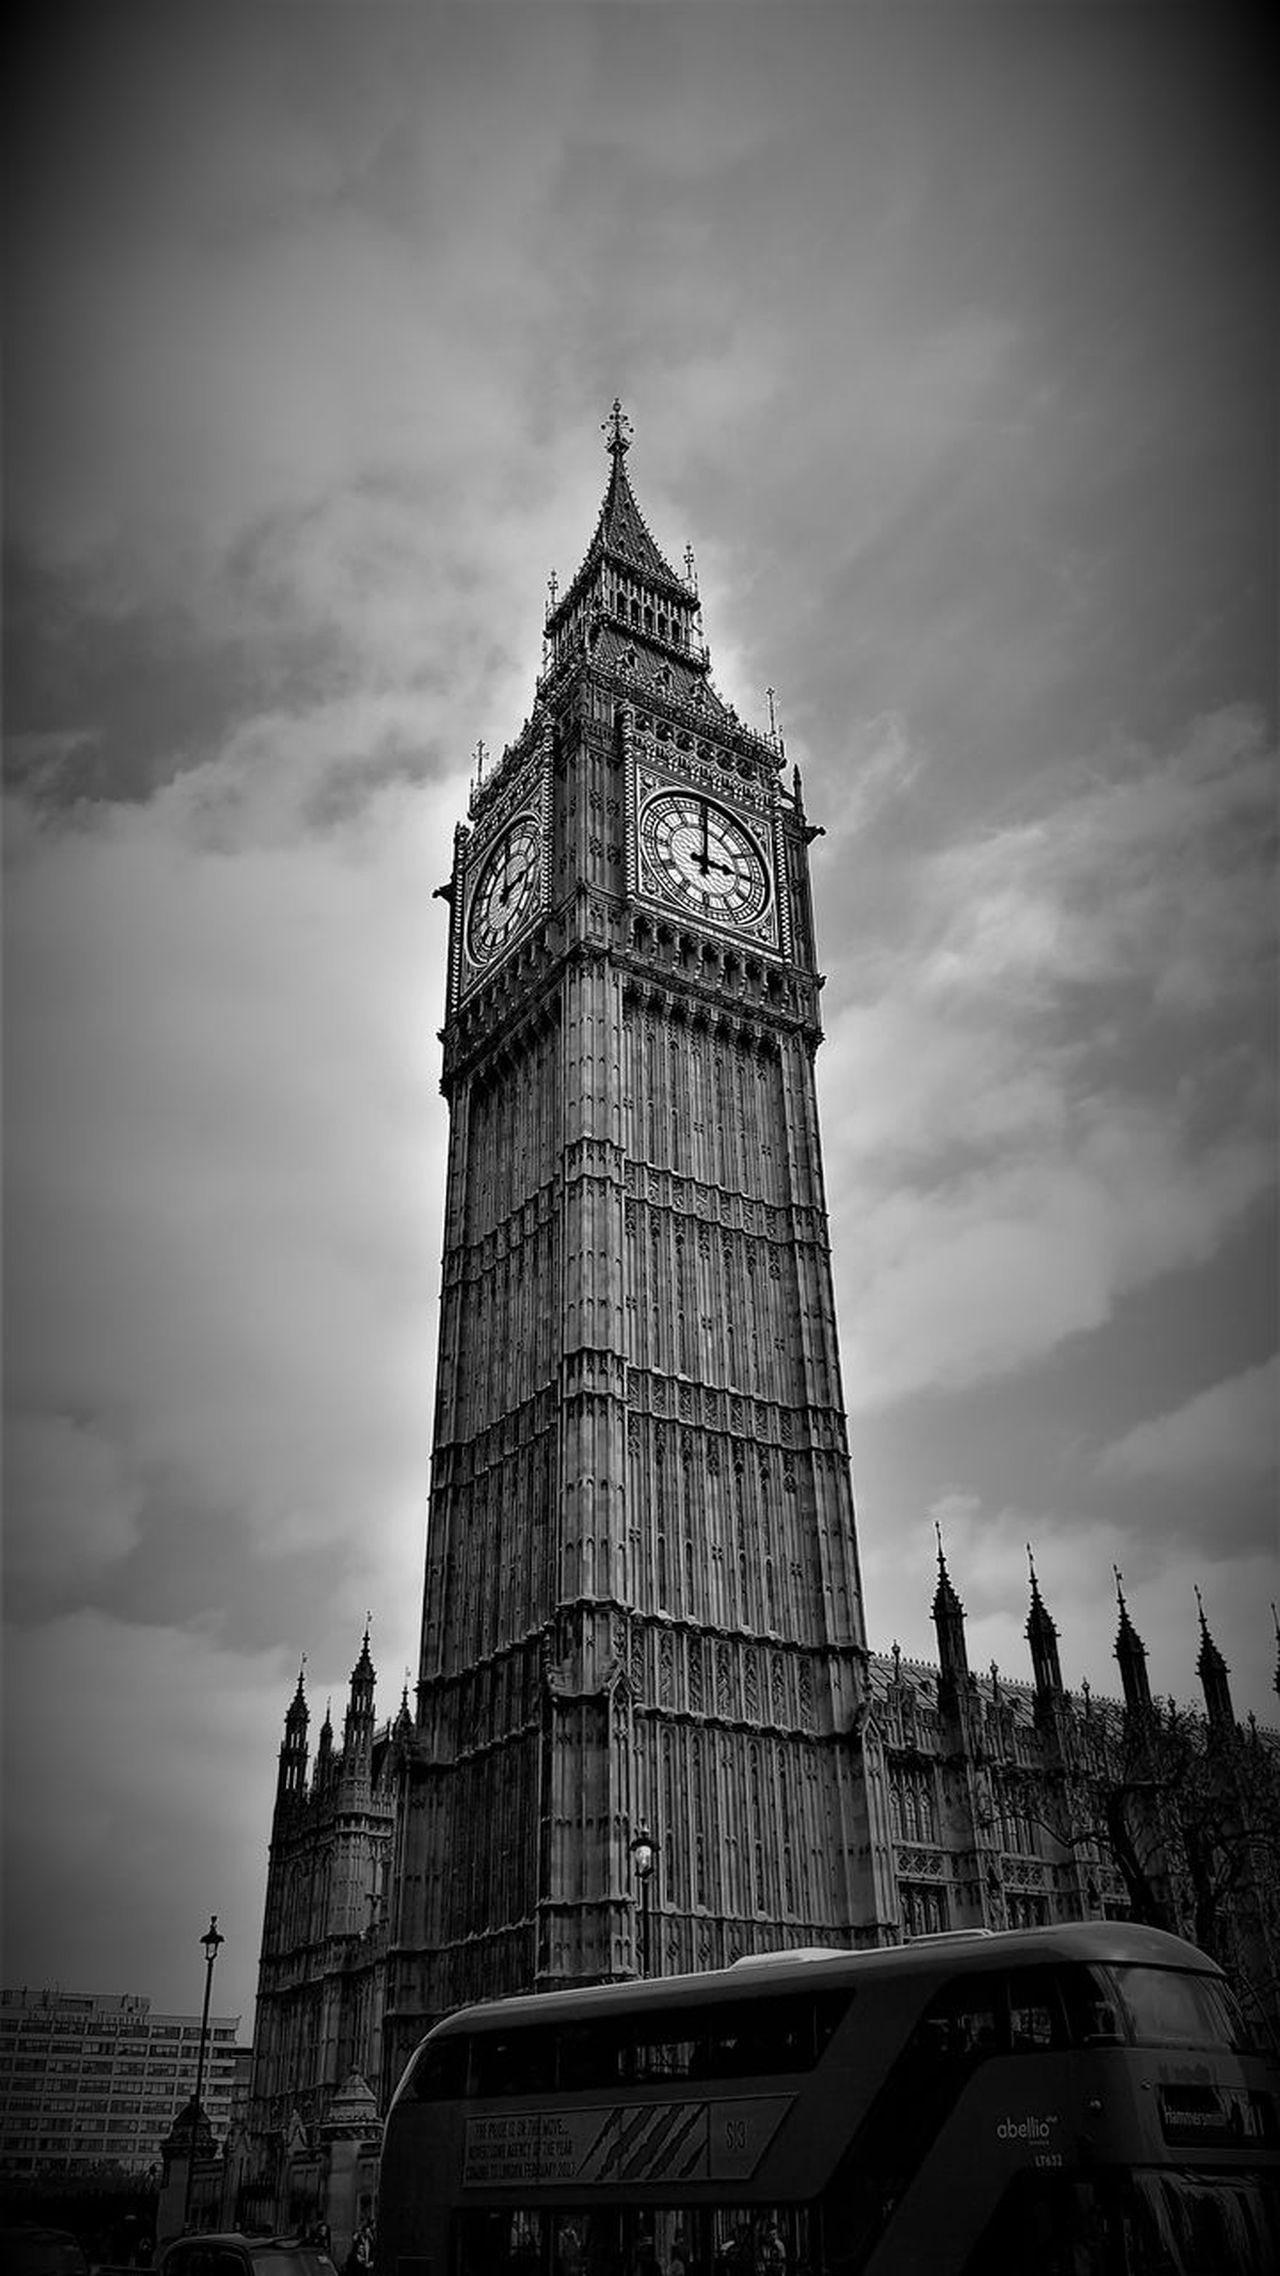 Architecture Big Ben London Built Structure City Clock Clock Tower Cloud - Sky Day Government London Lifestyle London UK. Londonlife LONDON❤ Low Angle View Outdoors Politics And Government Sky Tourism Tourist Attraction  Tourist Attractions Tourist Spot Tower Travel Travel Destinations Westminister